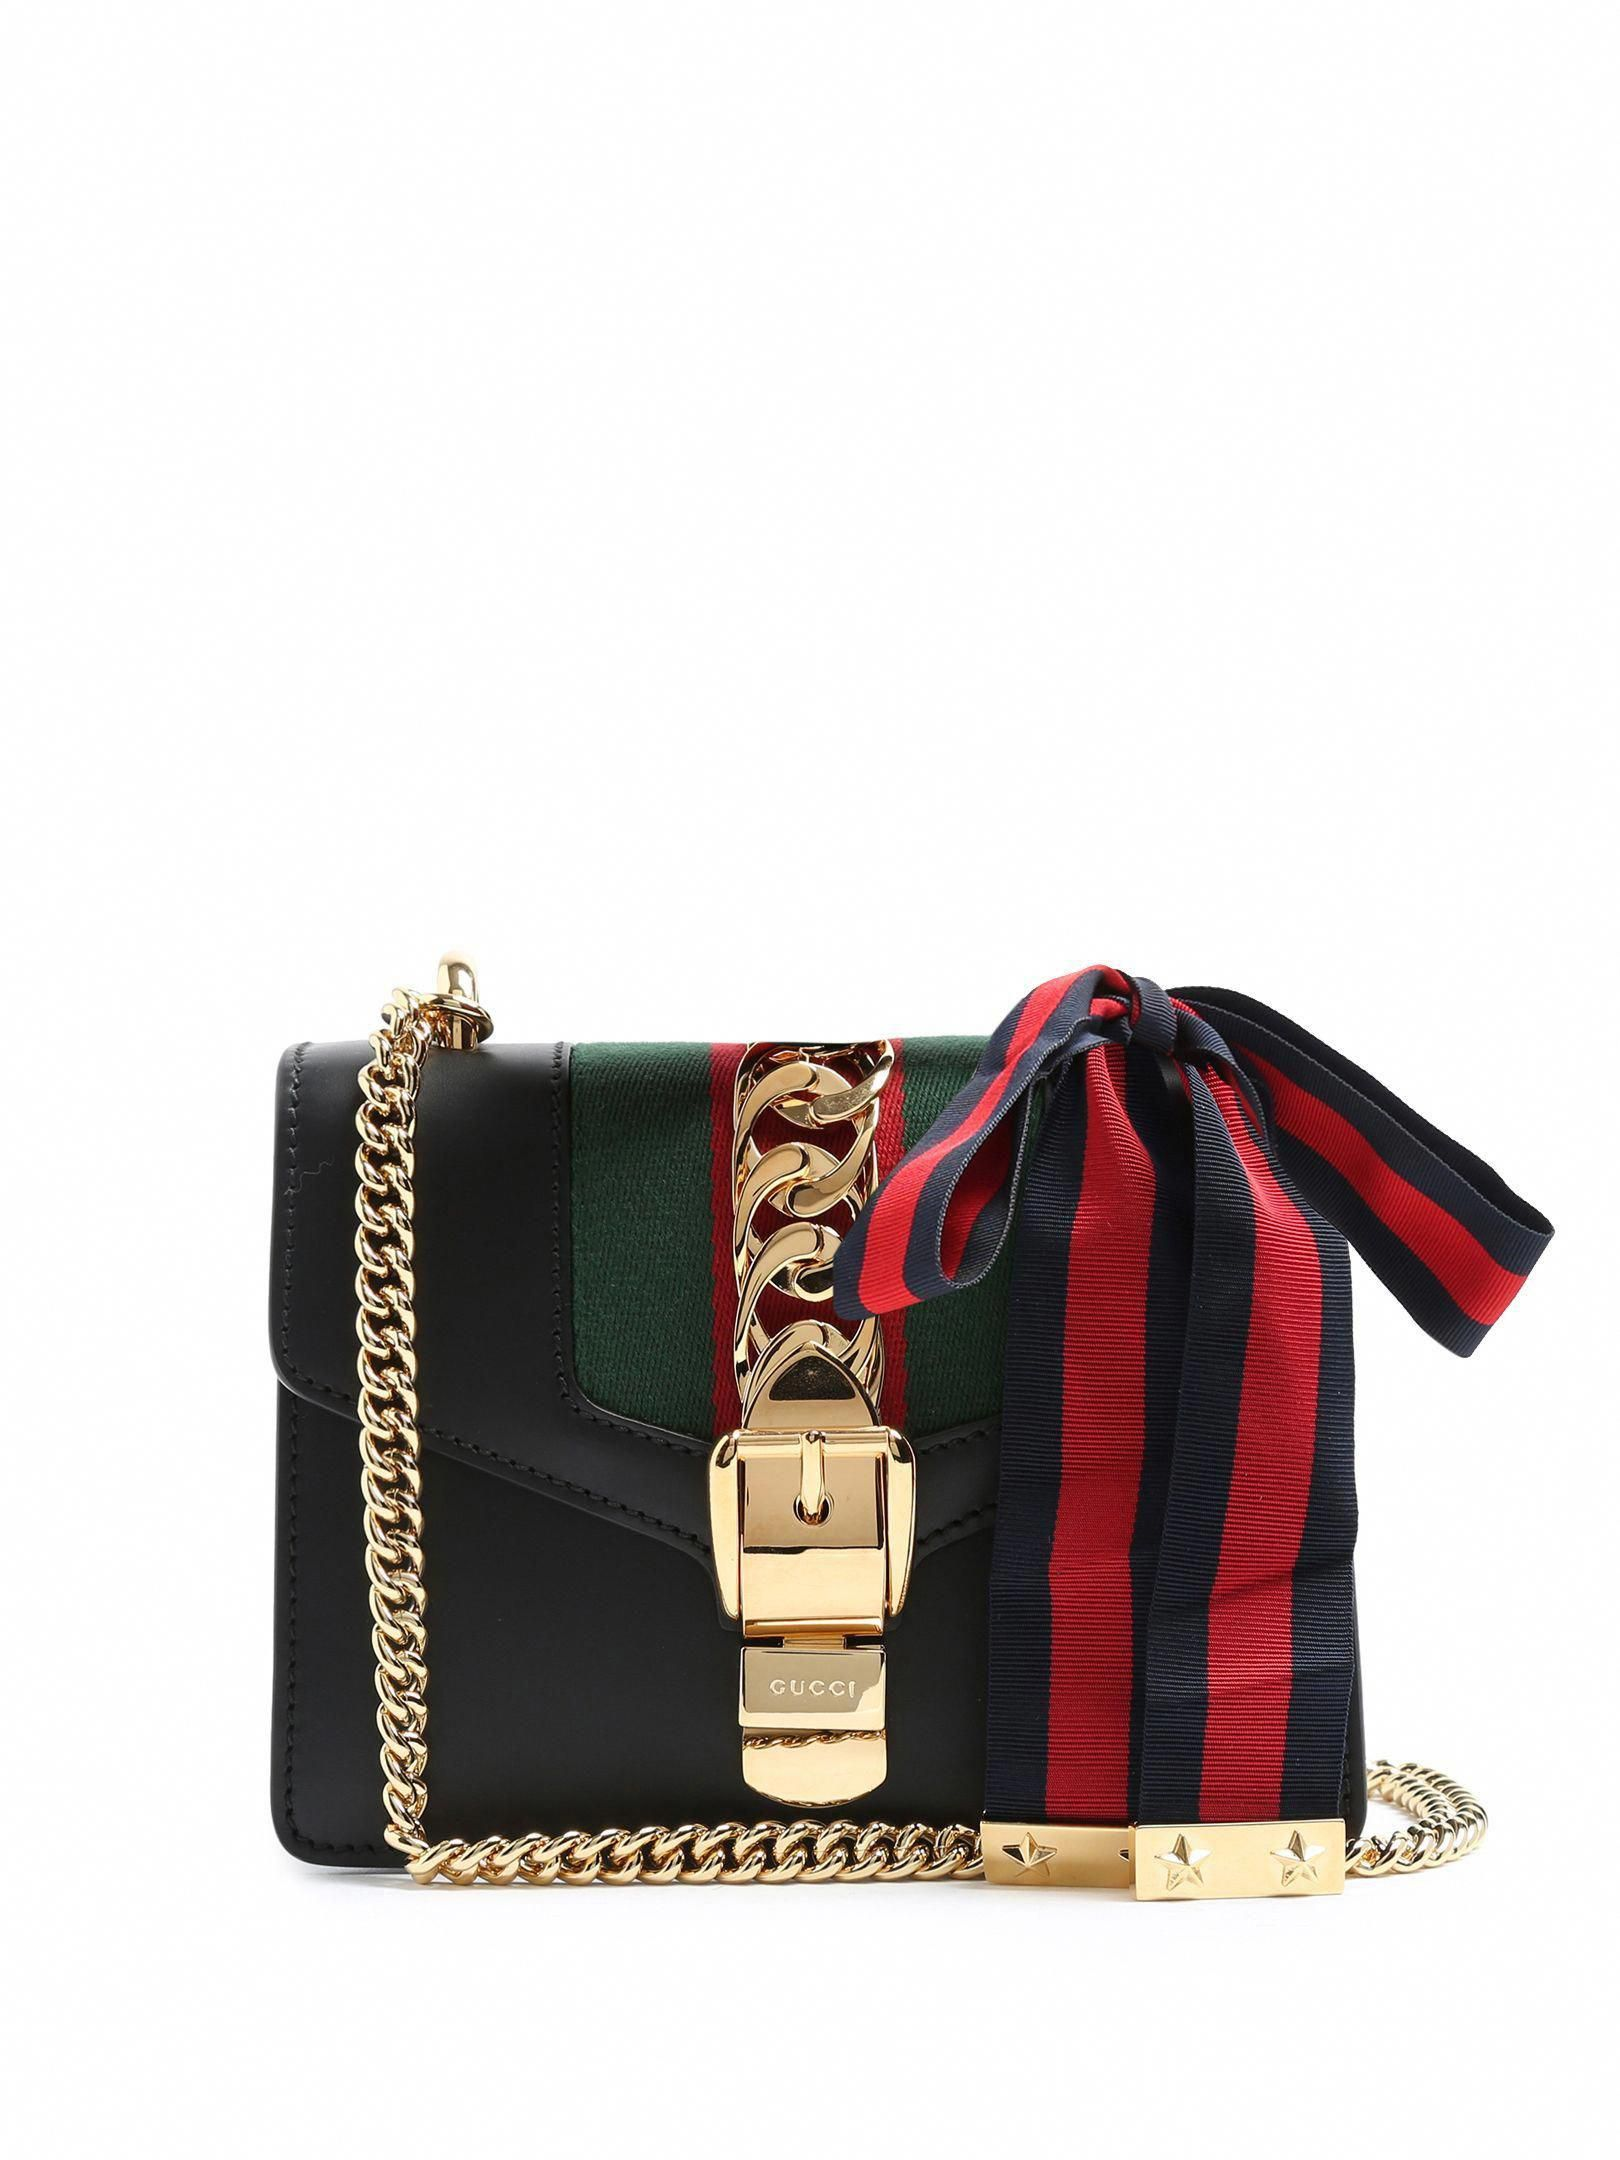 828e0058d023 Sylvie leather cross-body bag | Gucci | MATCHESFASHION.COM US #Guccihandbags